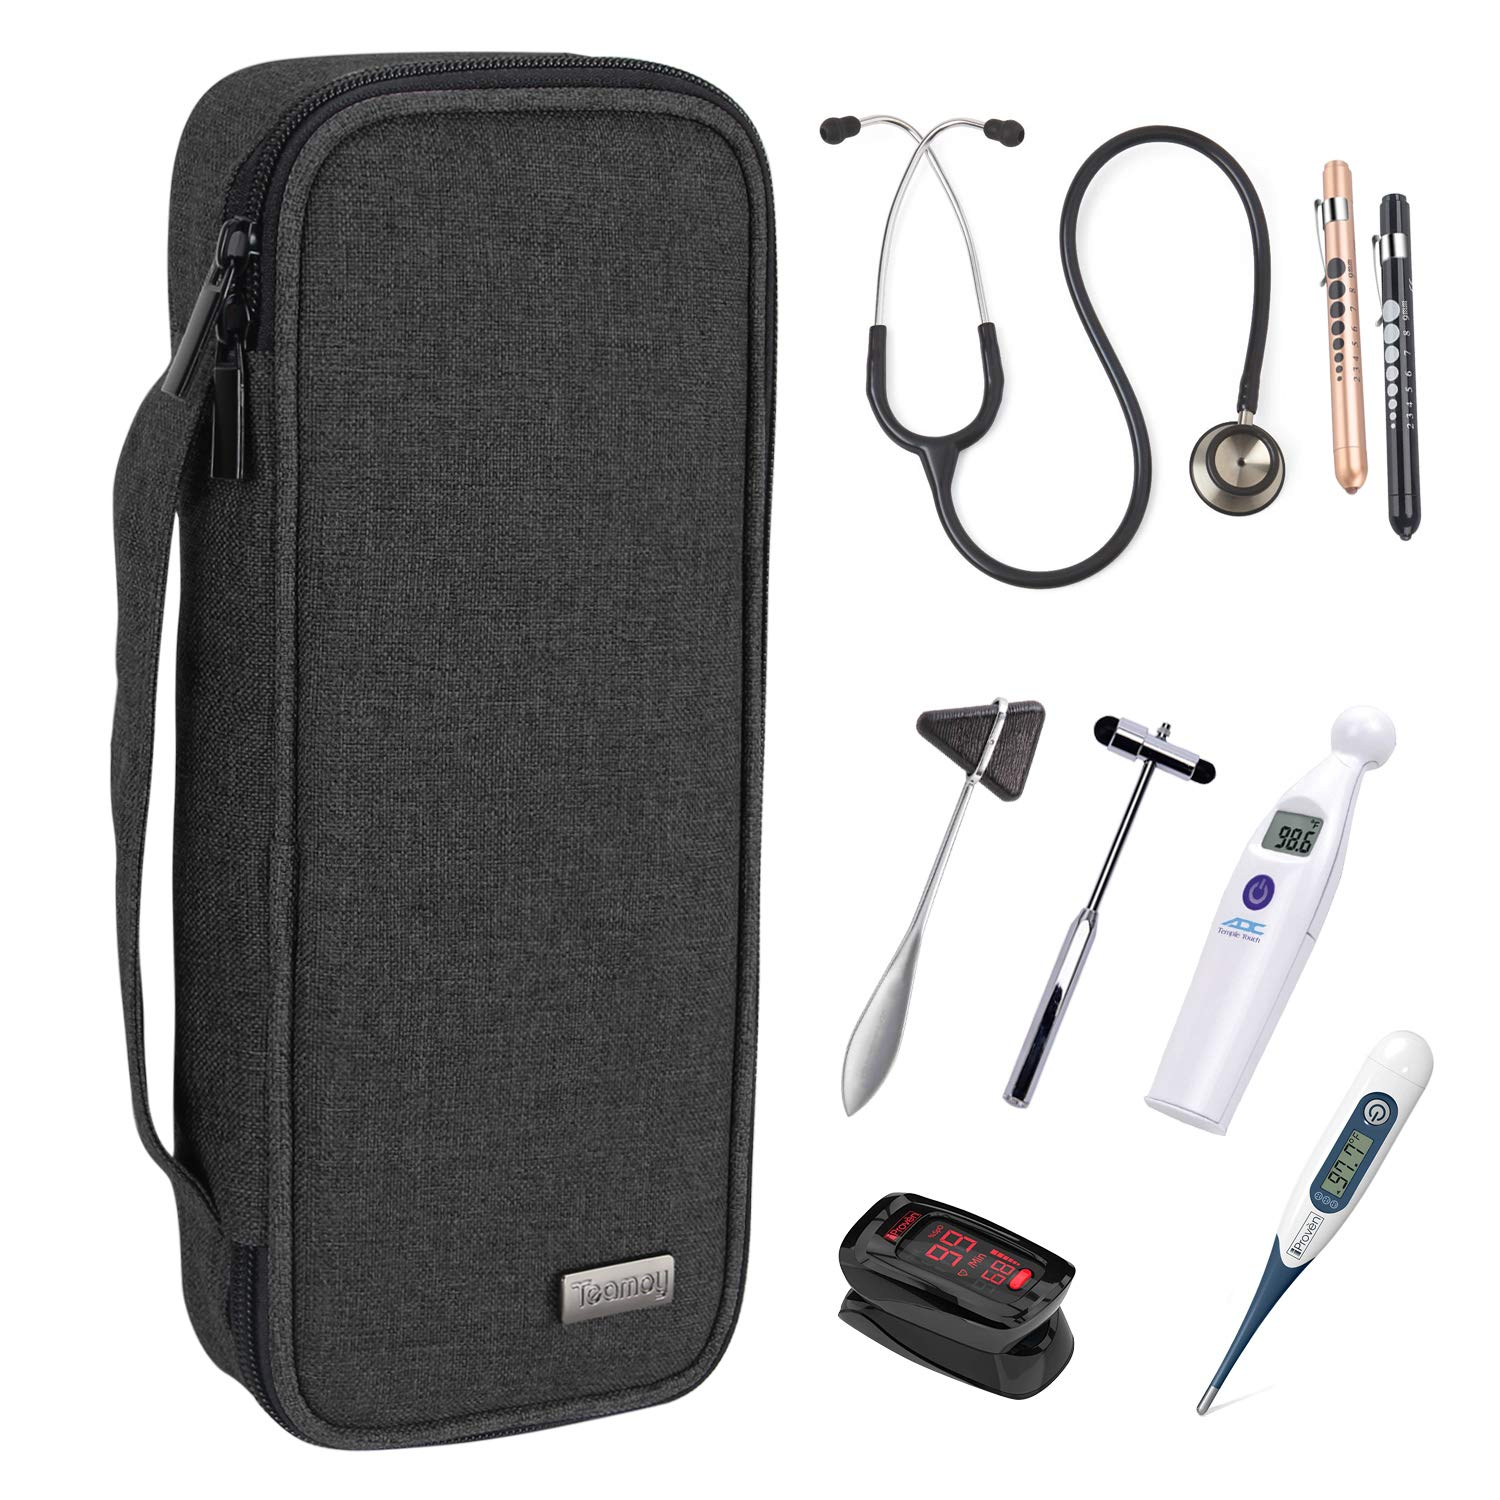 Teamoy Stethoscope Case Regular dealer Compatible with Sales for sale 3M St Omron Littmann ADC